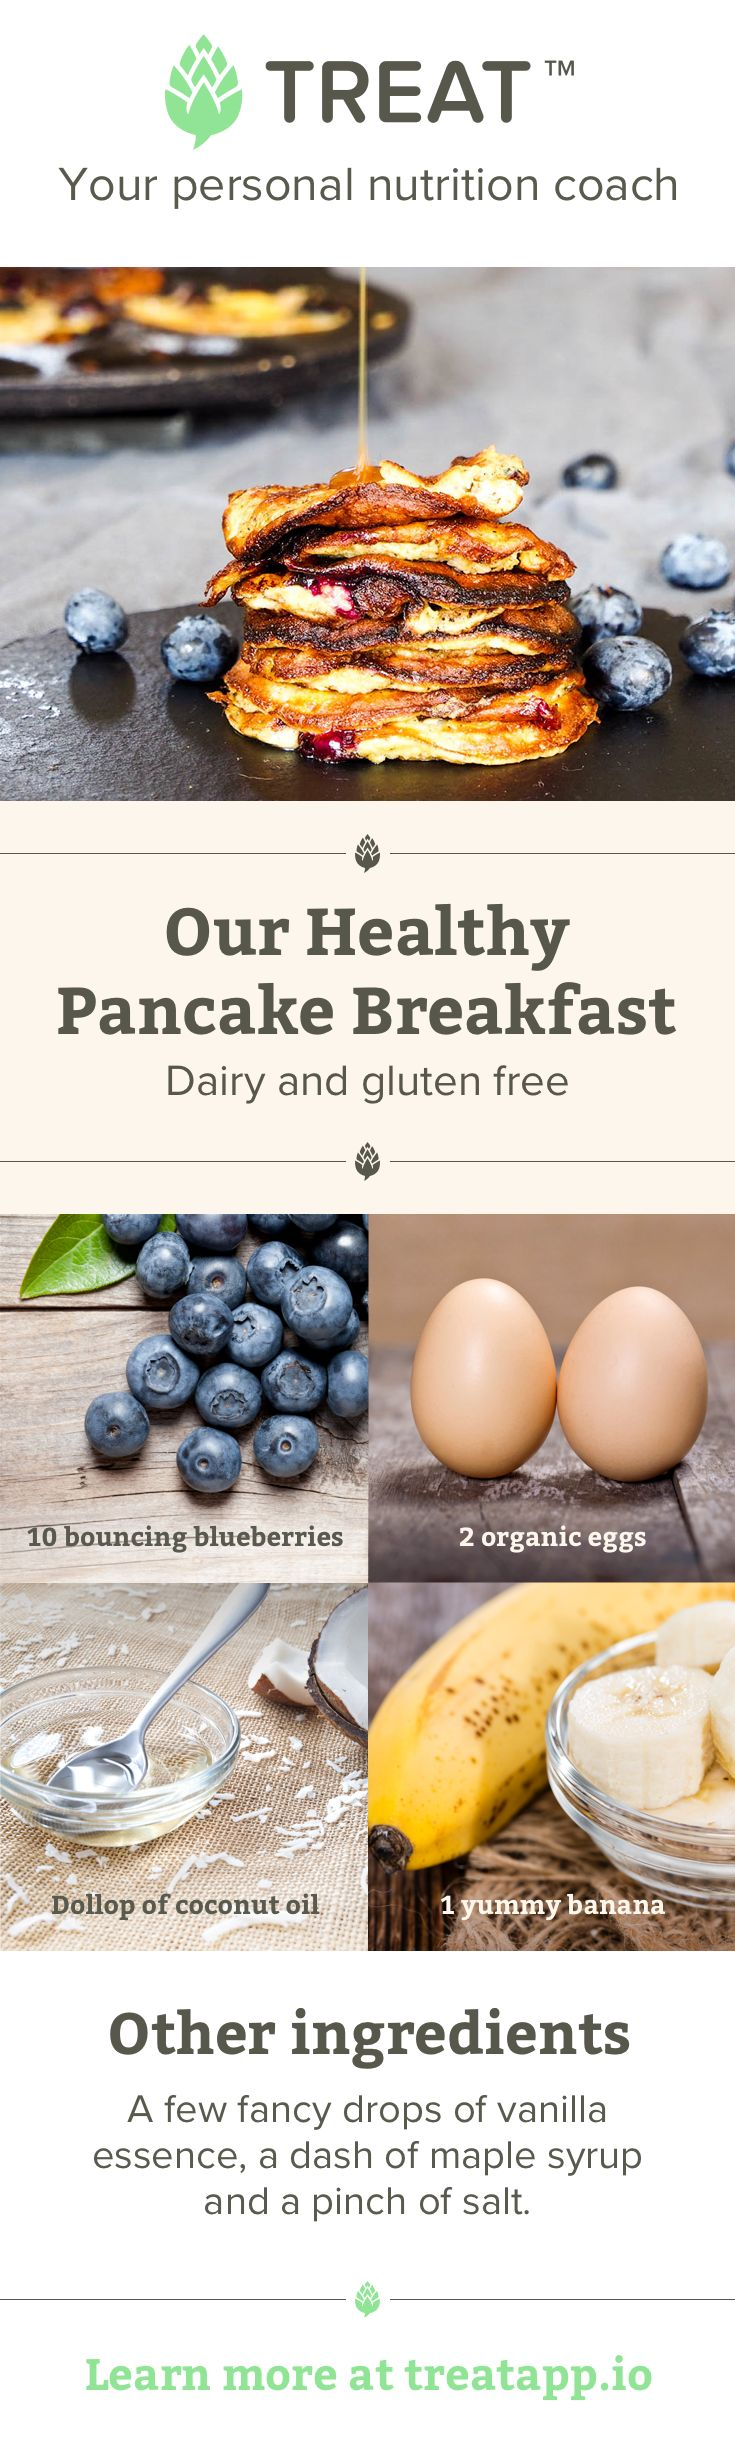 Everyone loves pancakes, and banana pancakes with blueberries are even better!